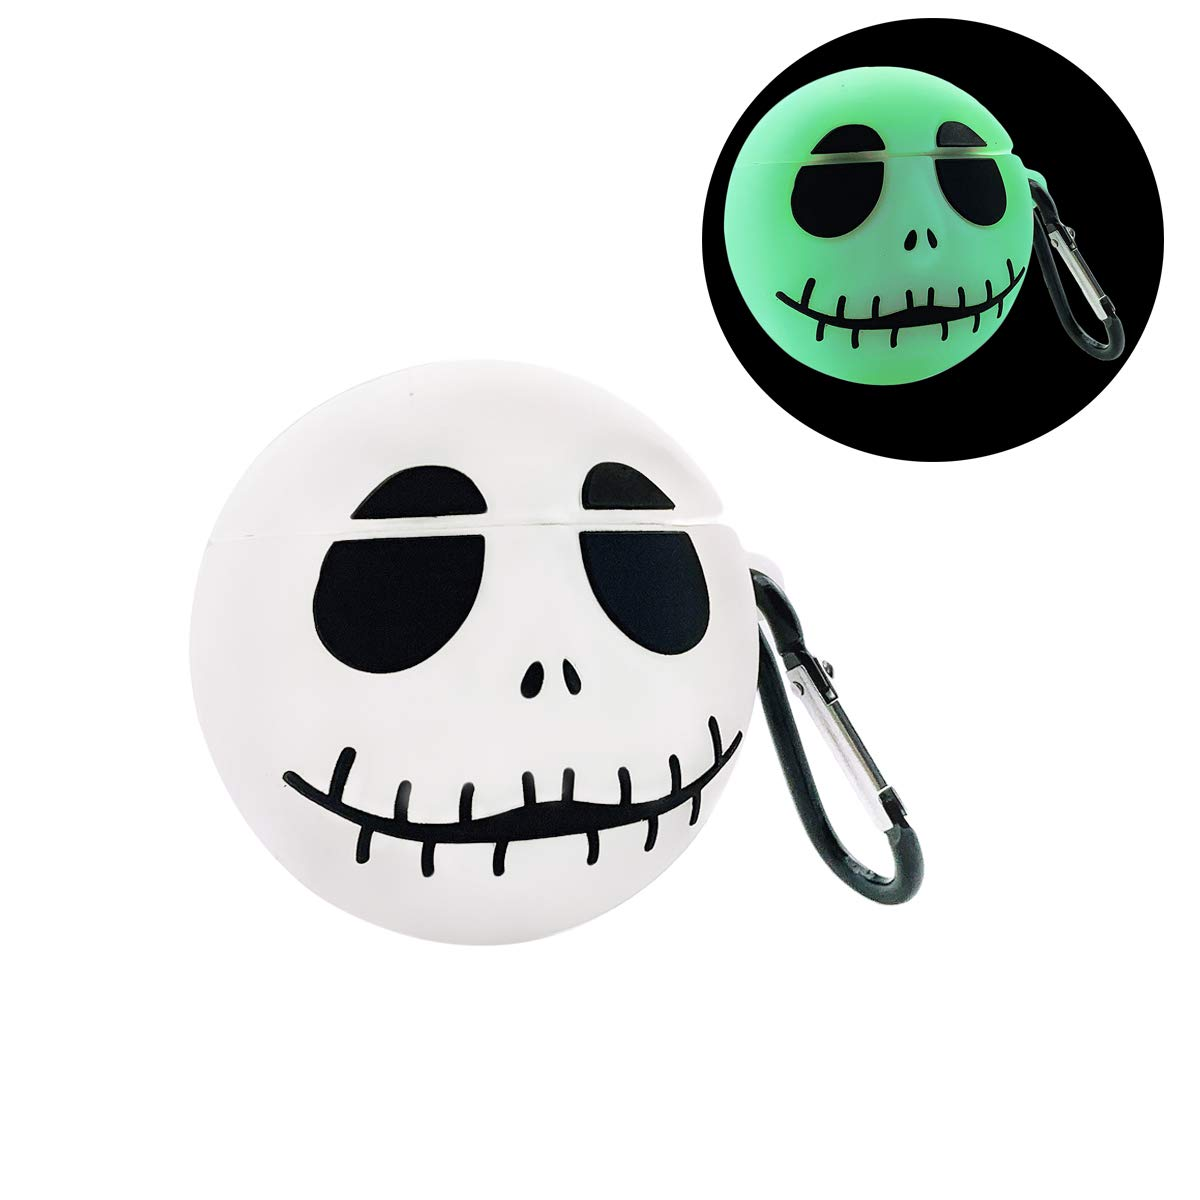 MOLOVA Case for Airpods 1&2 Case,Soft Silicone 3D Cute Funny Fun Cool Cartoon Character Kawaii Airpods Cover Fashion Chic Design Skinwith Keychain for Kids Teens Boys Girls (Luminous Skull)